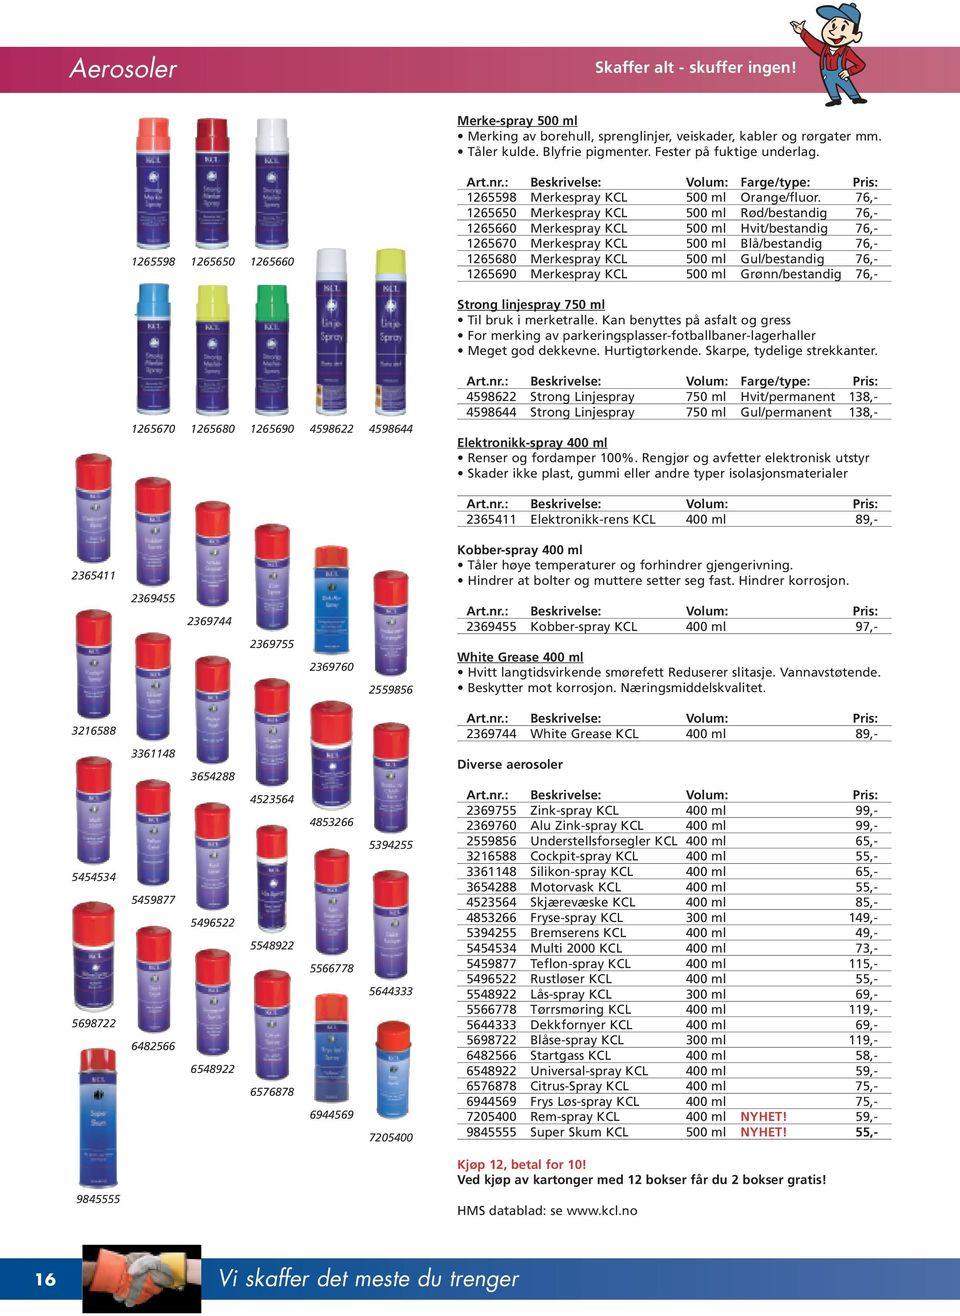 76,- 1265650 Merkespray KCL 500 ml Rød/bestandig 76,- 1265660 Merkespray KCL 500 ml Hvit/bestandig 76,- 1265670 Merkespray KCL 500 ml Blå/bestandig 76,- 1265680 Merkespray KCL 500 ml Gul/bestandig